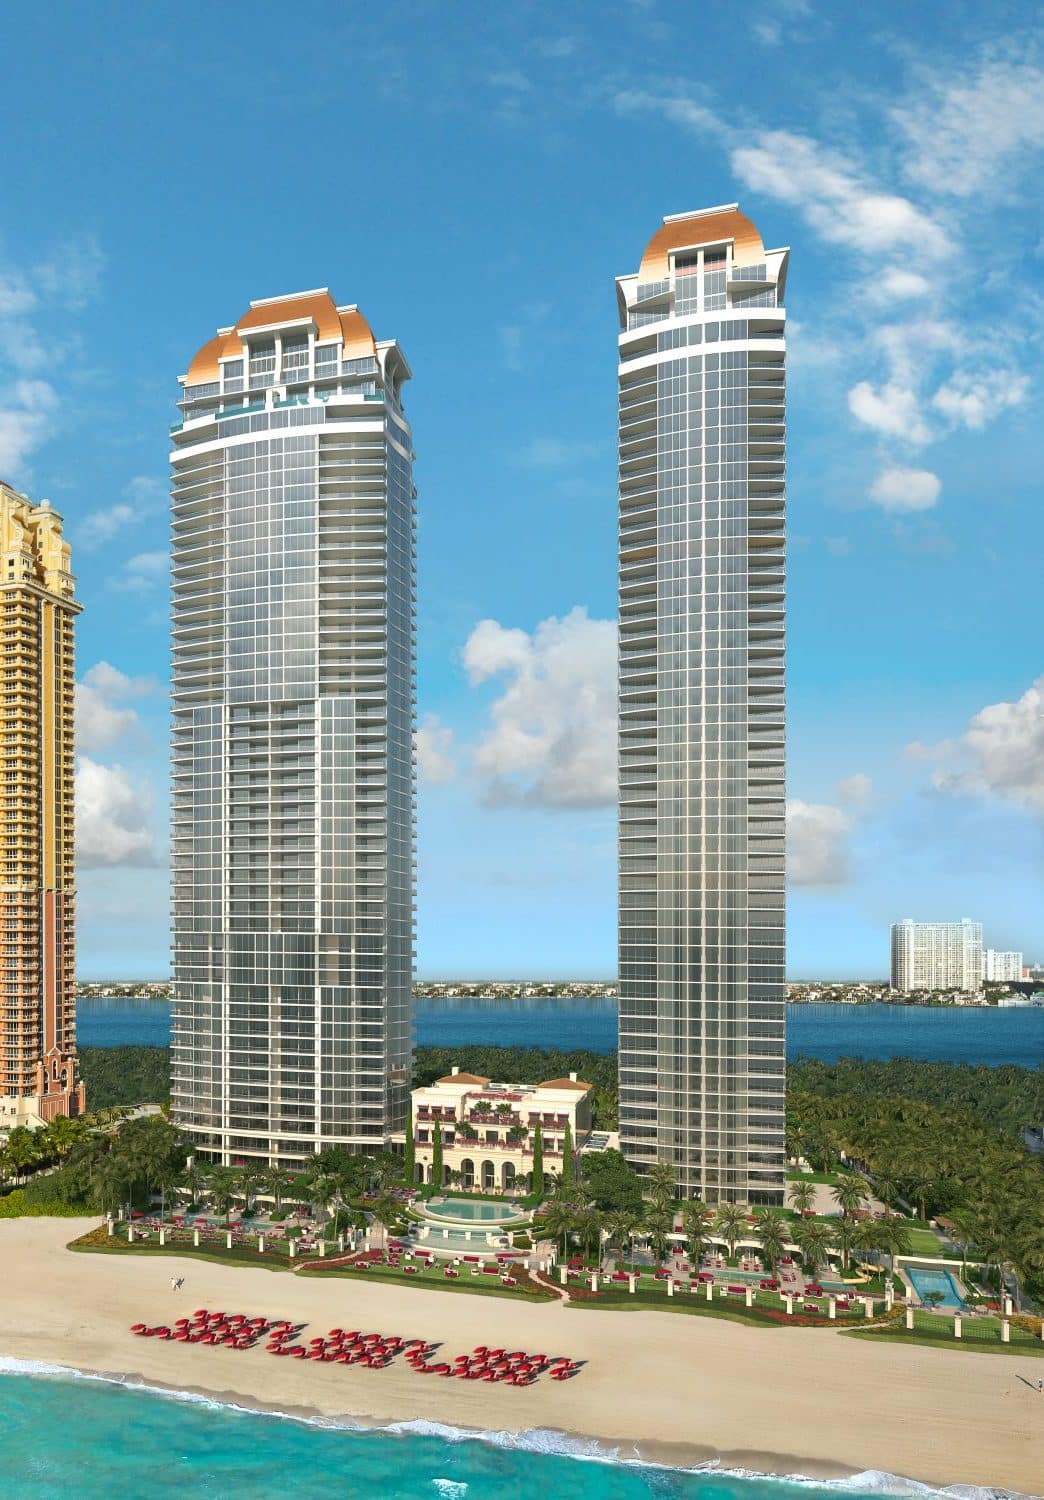 skyview image of Estates at Acqualina